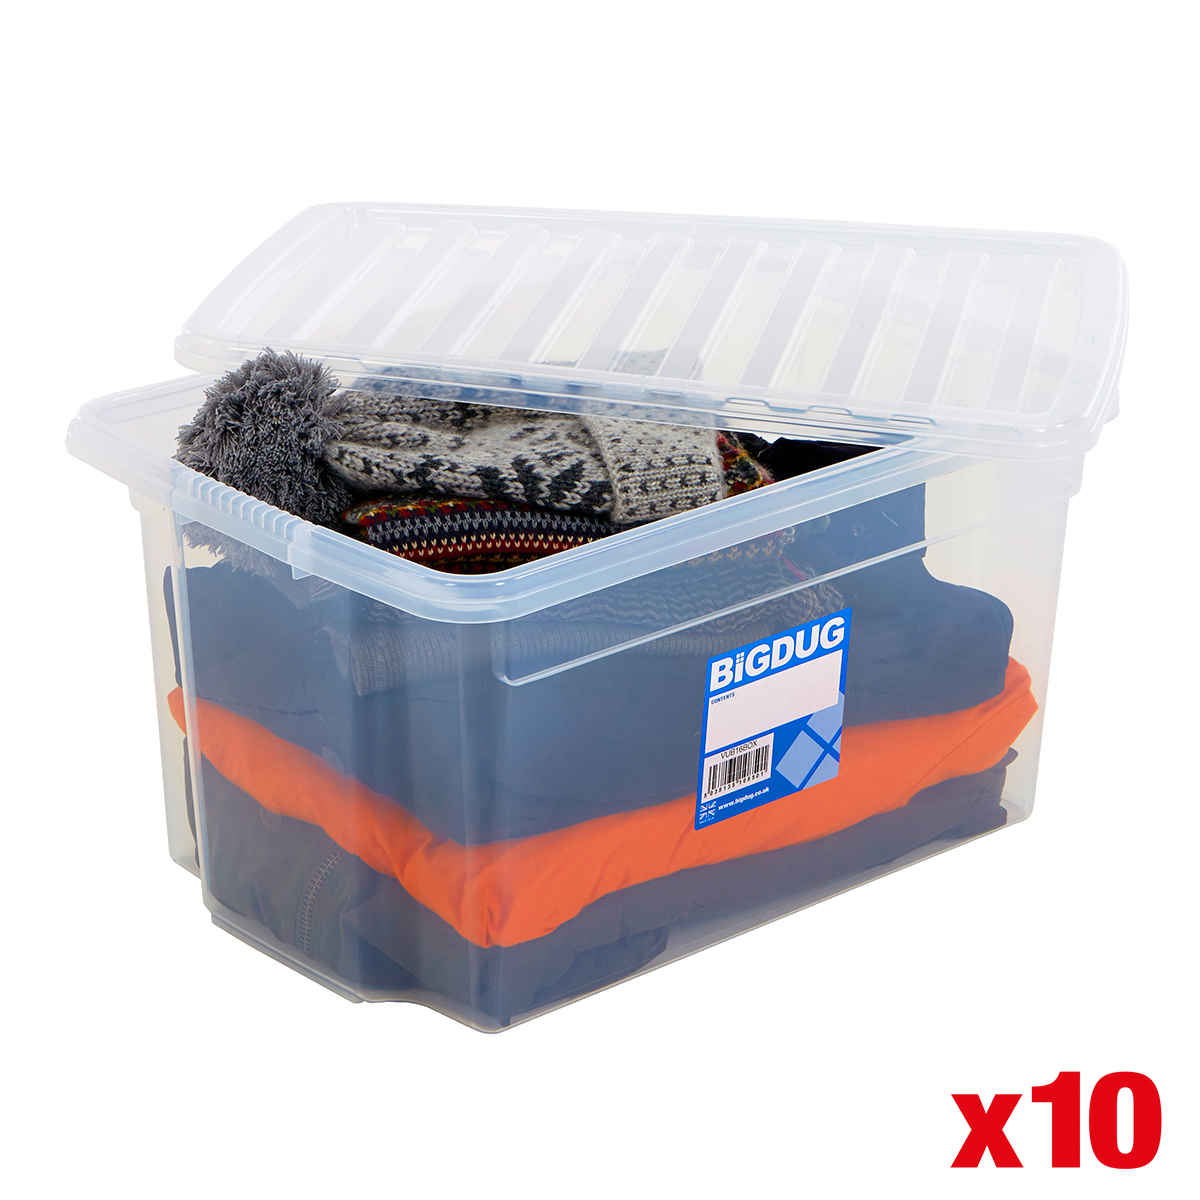 Plastic Containers With Lids Large Storage Containers With Lids Bing Images